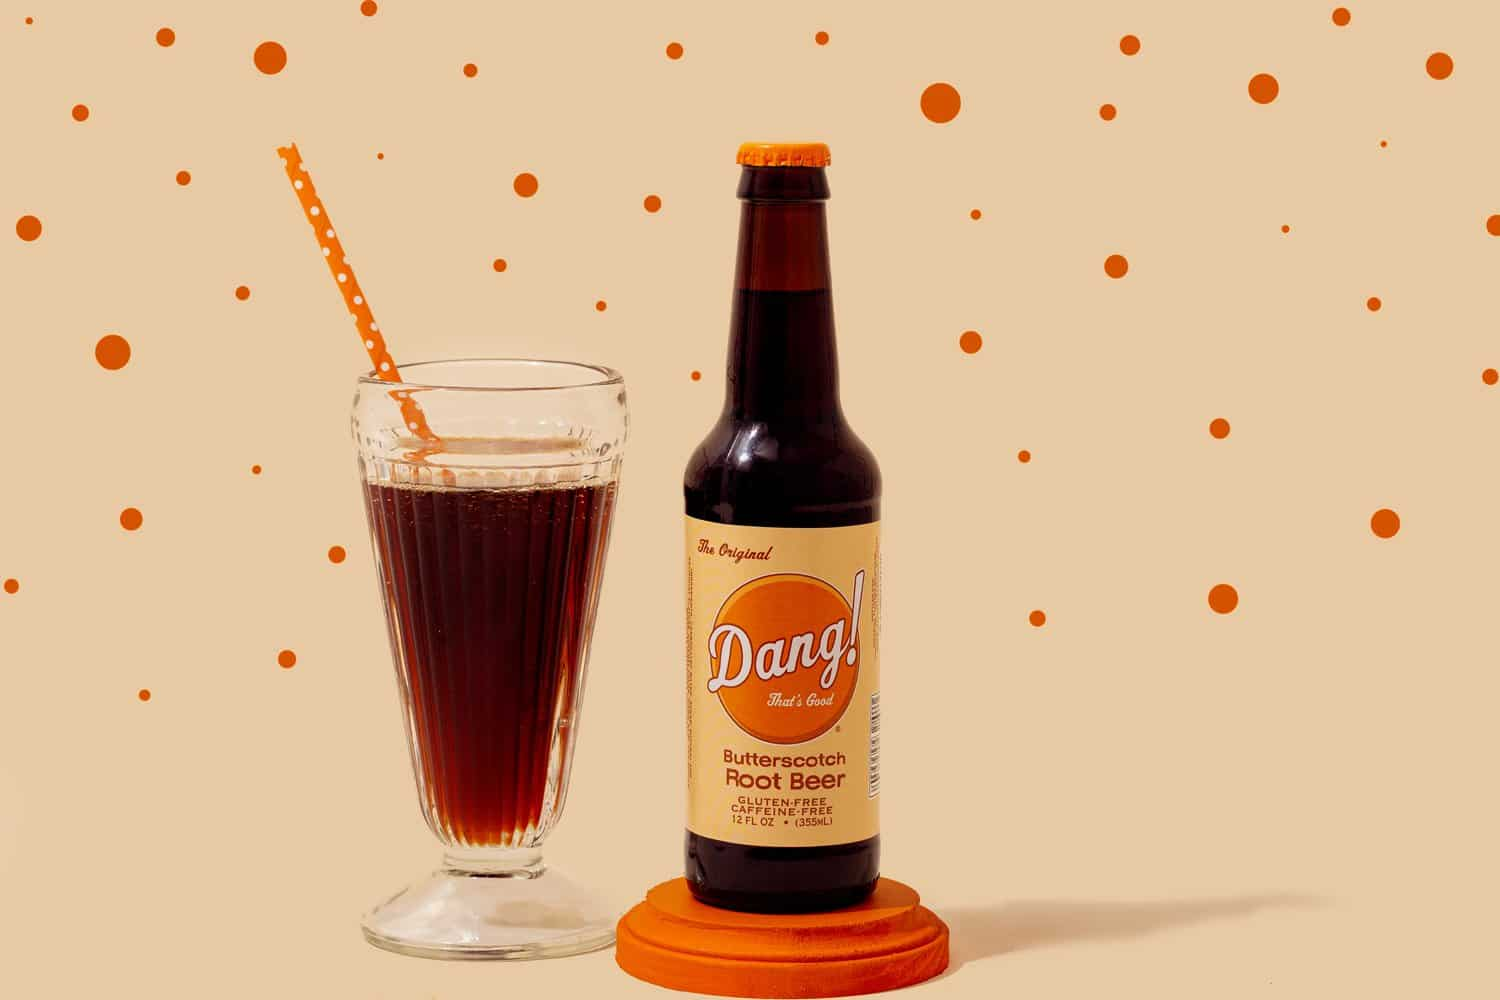 dang-thats-good-soda-stop-motion-13